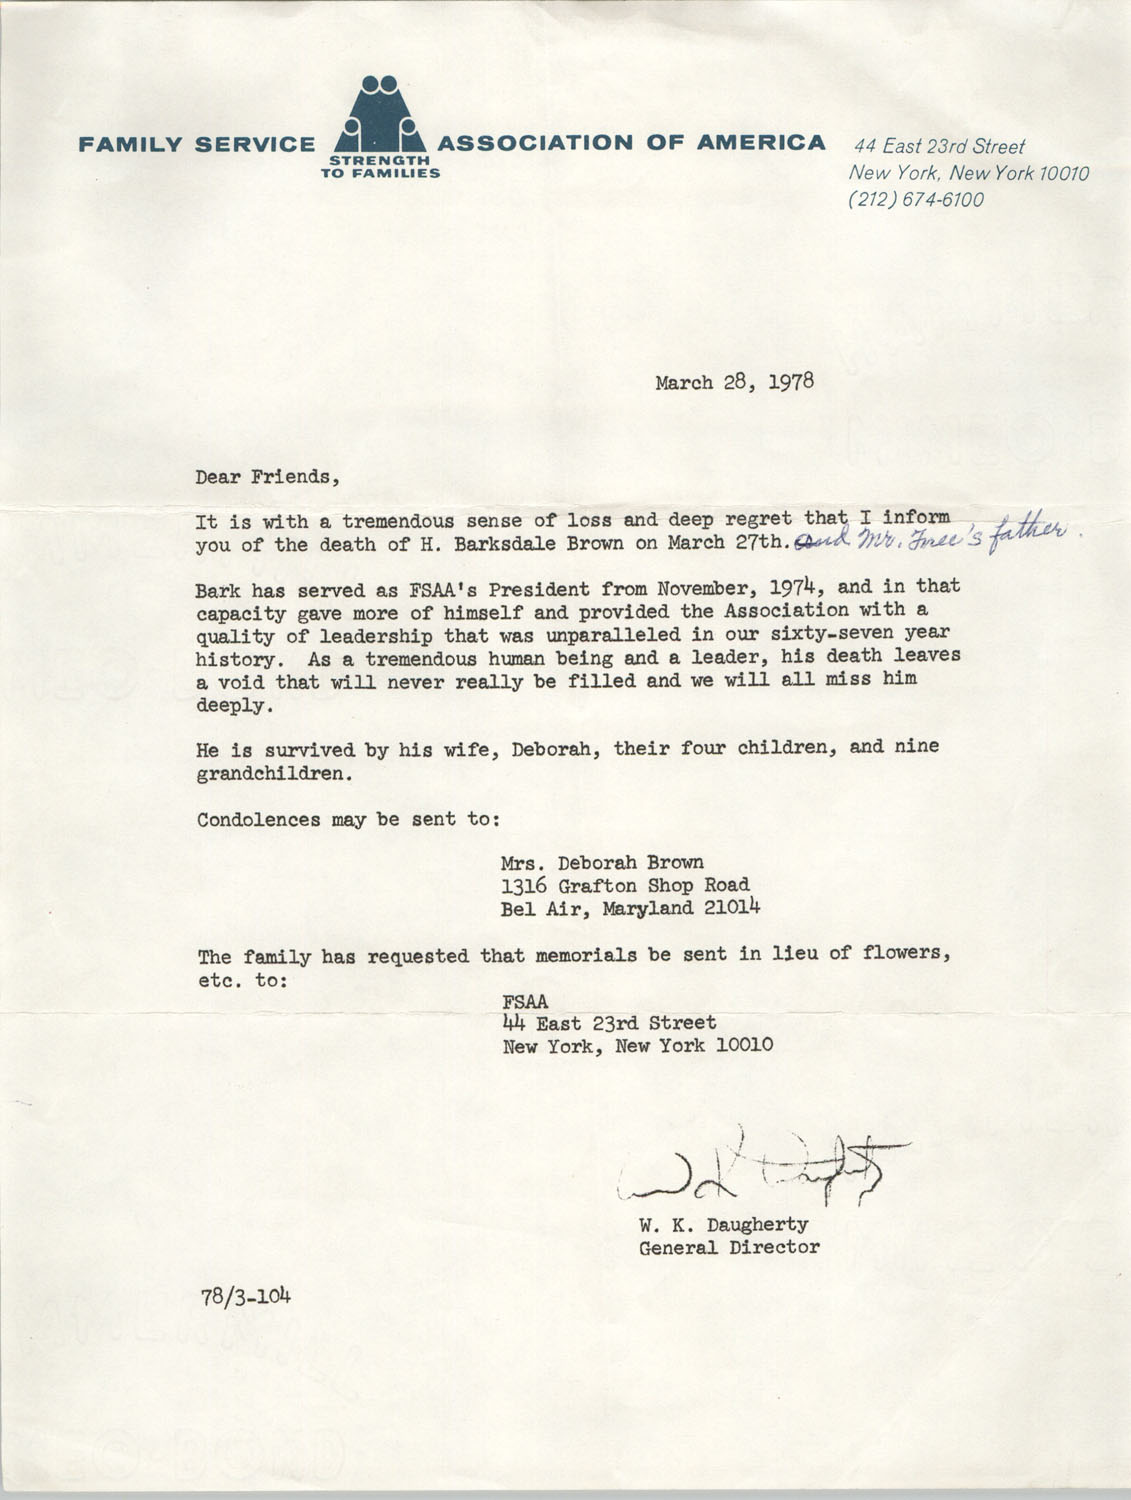 Letter from W. K. Daugherty to